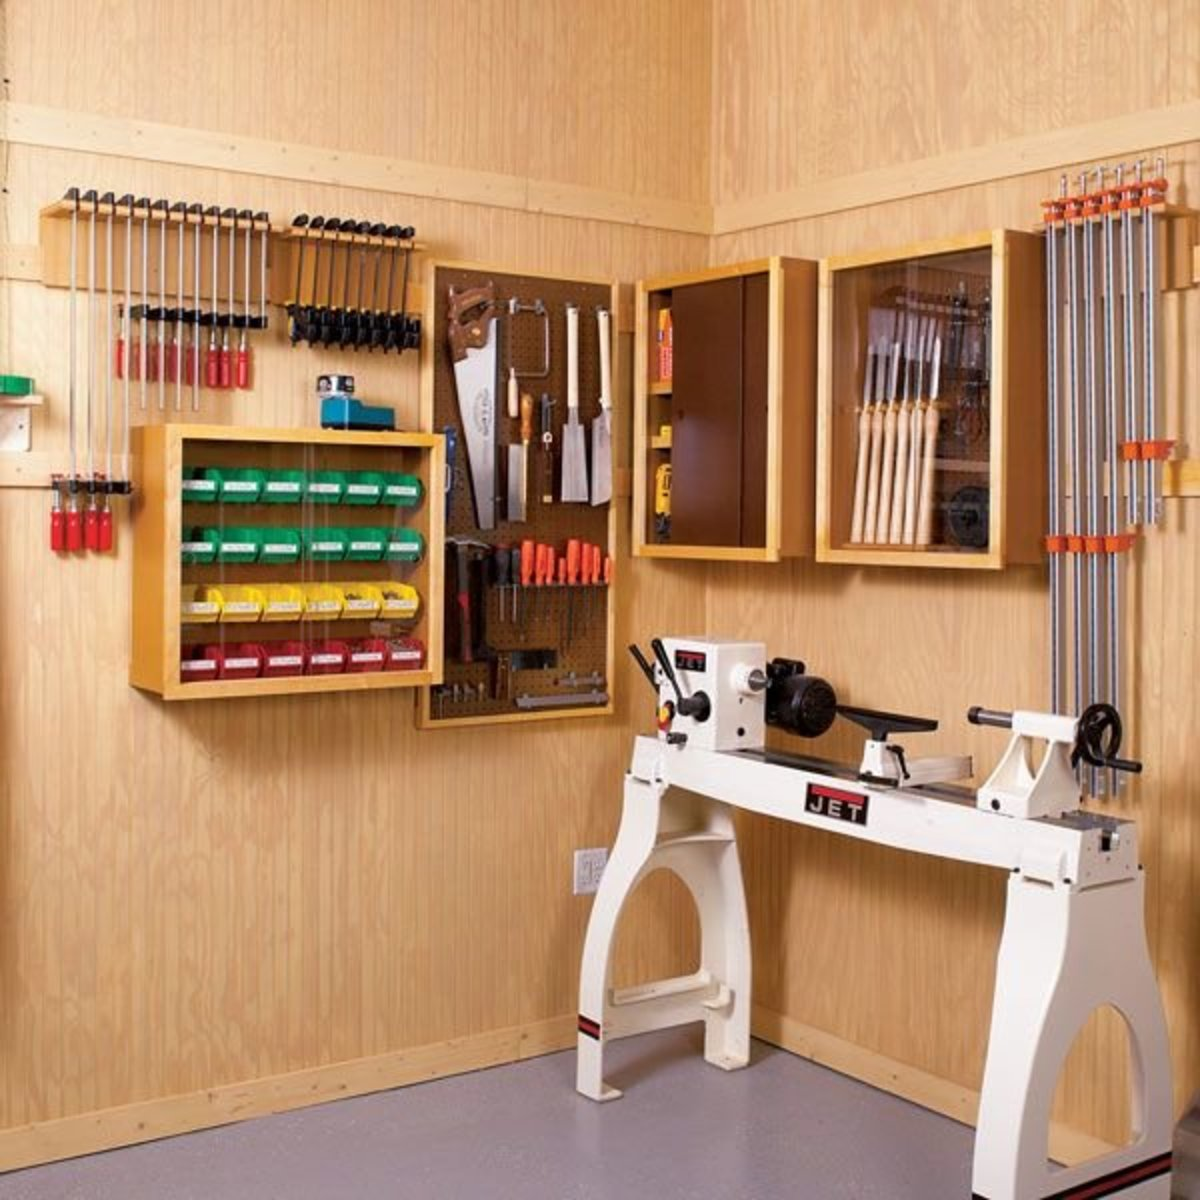 Flexible Garage Wall Storage: Woodworking Project Paper Plan To Build